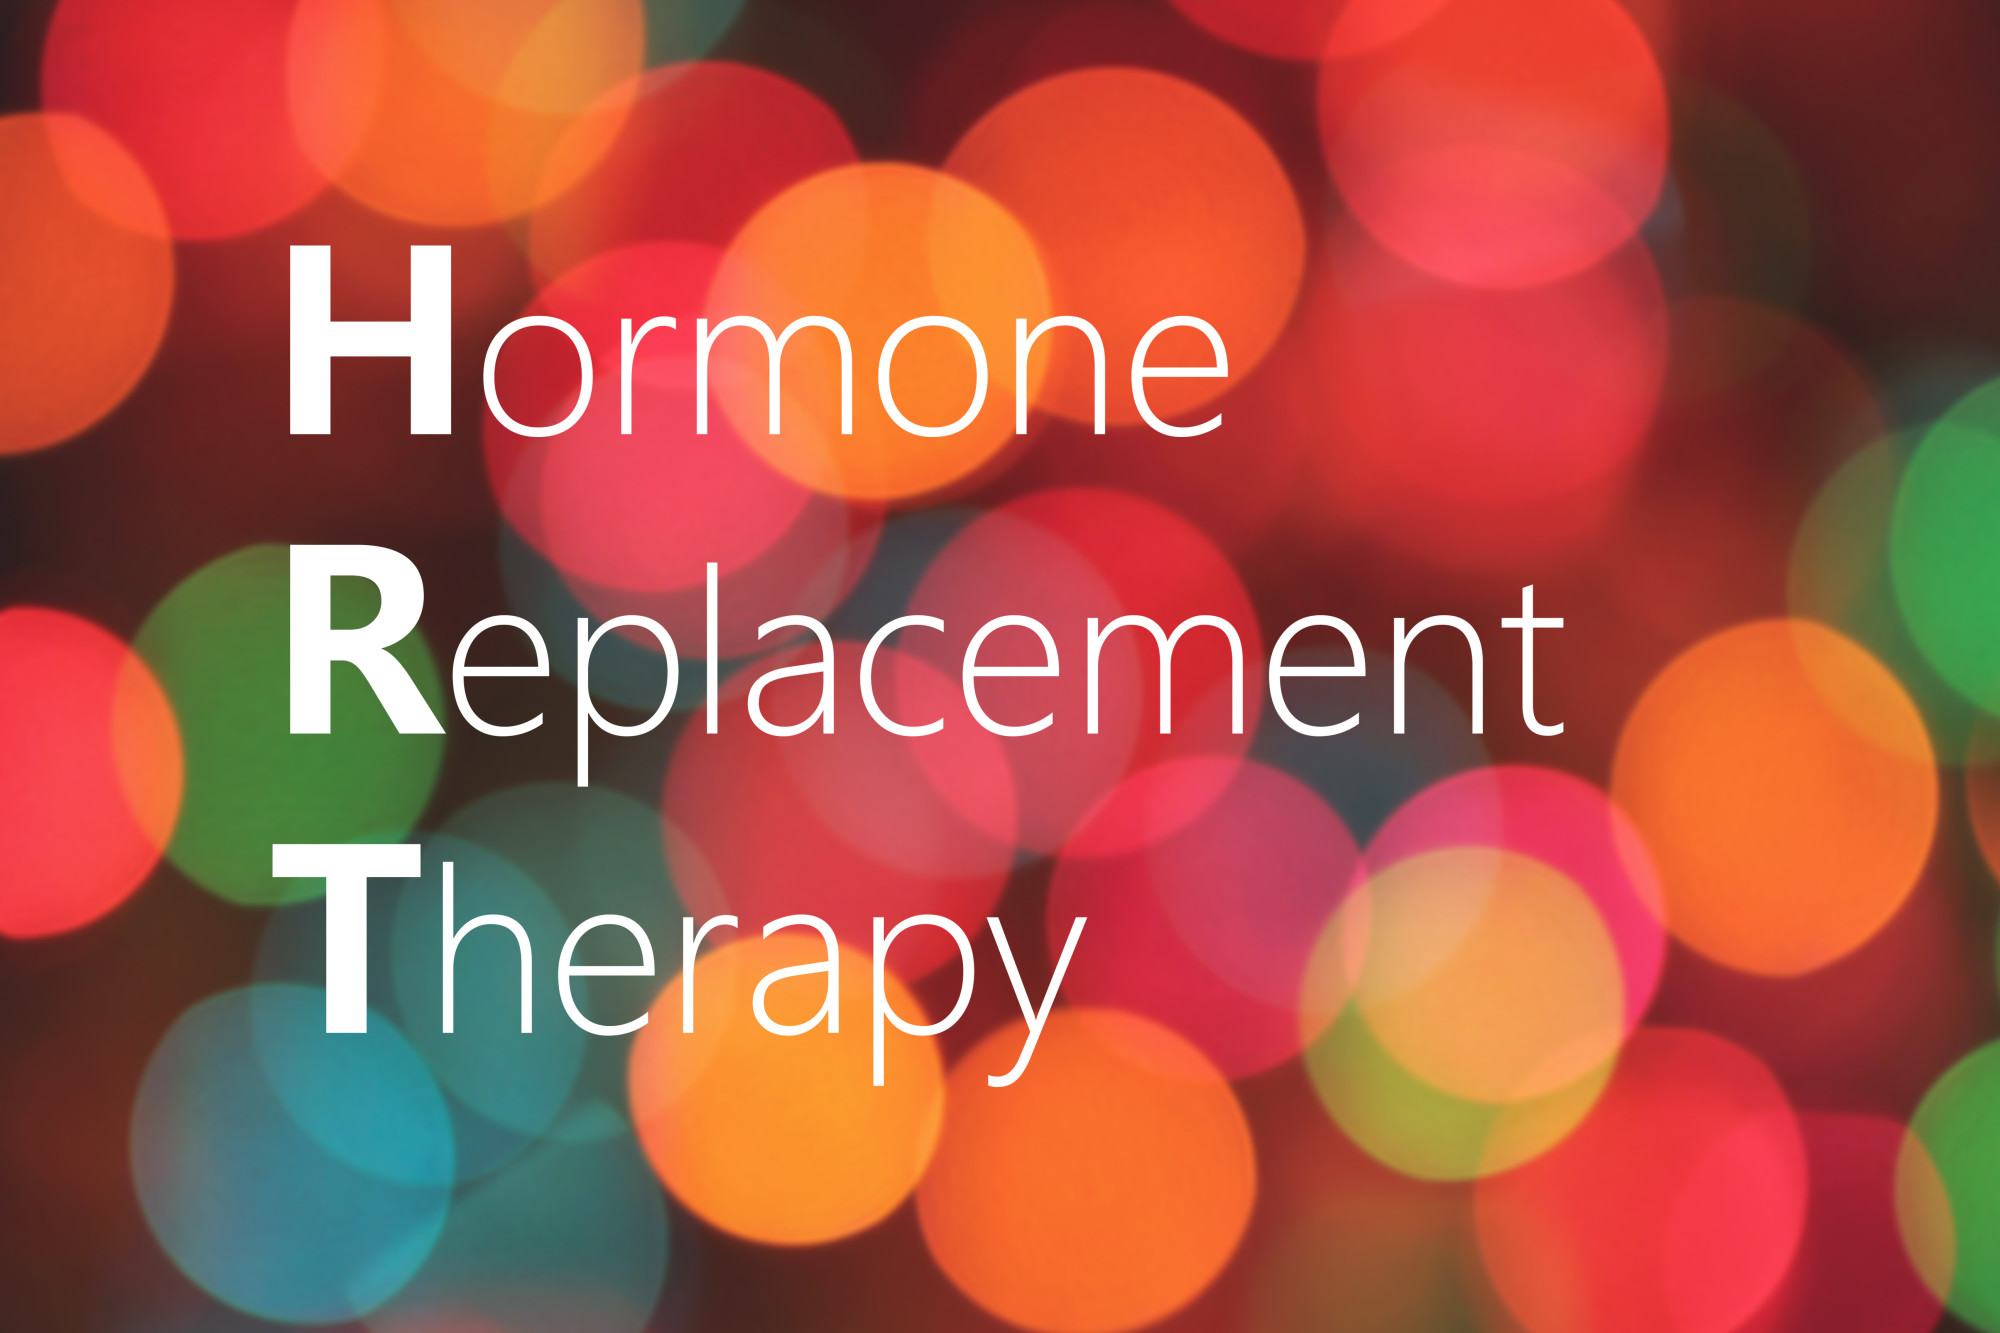 9 Things You Need to Know About Hormone Replacement Therapy For Women